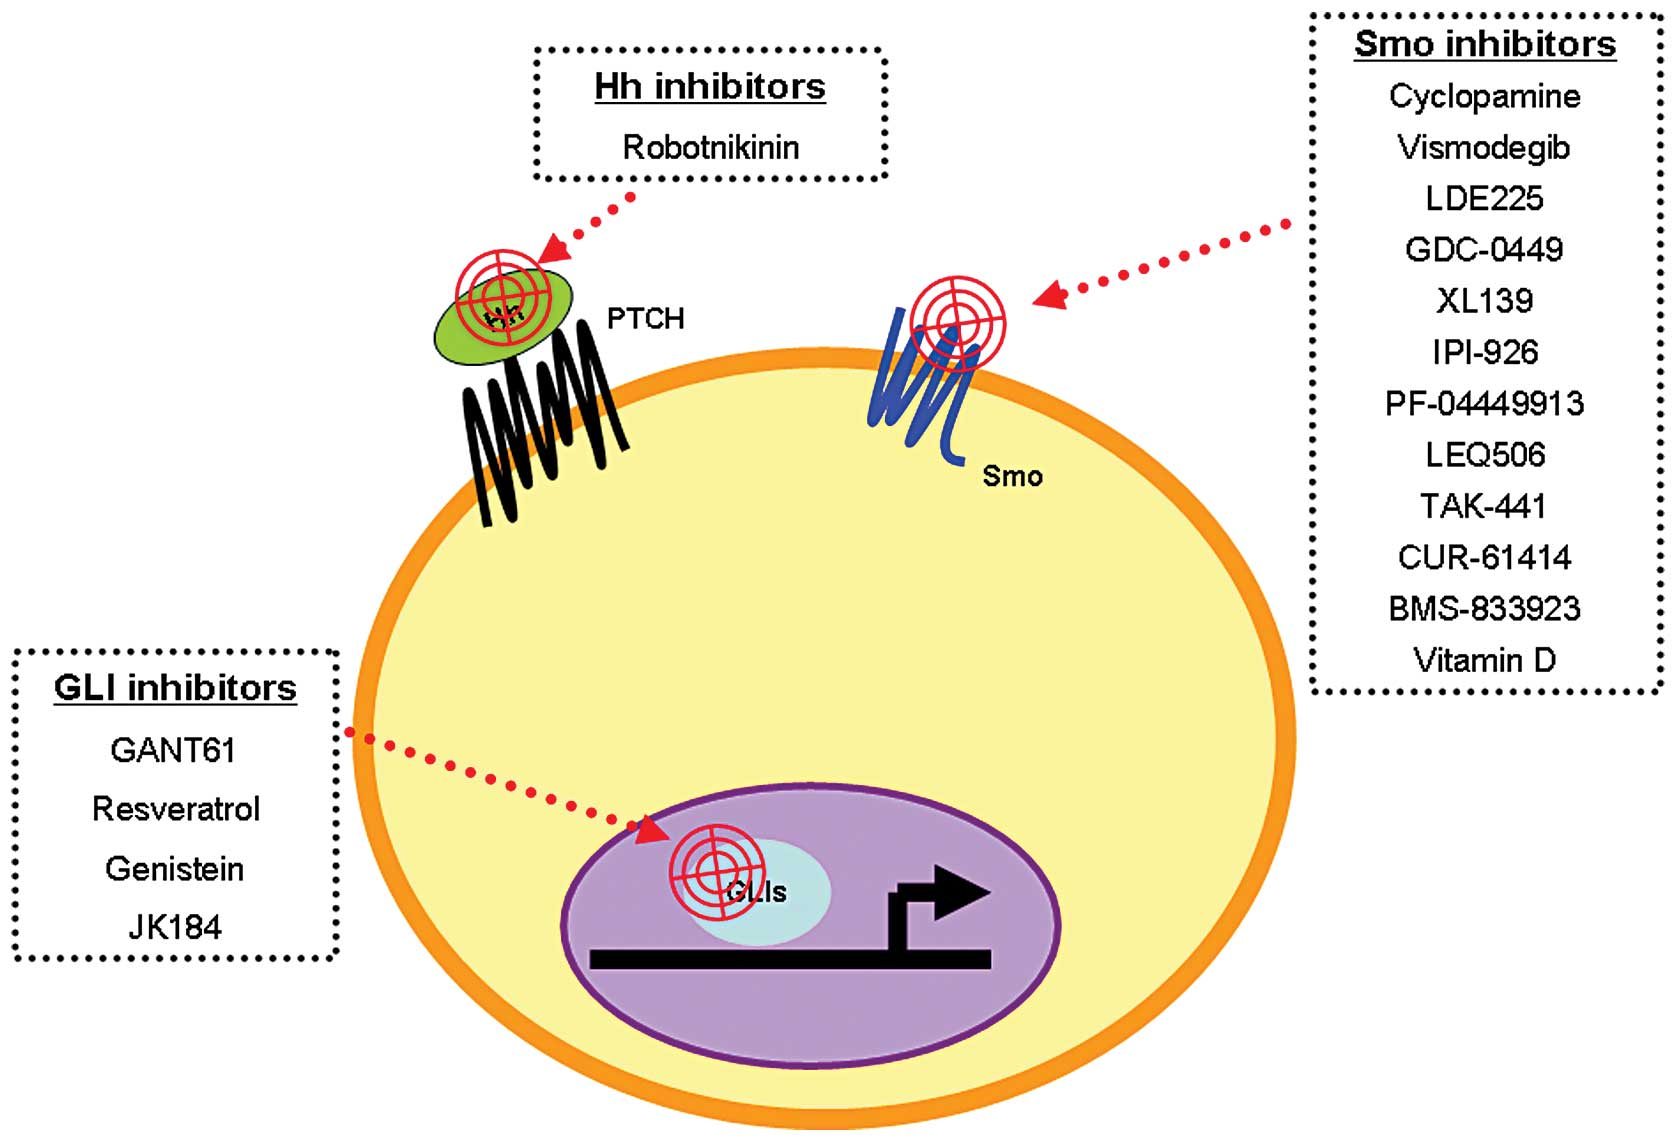 Role Of The Hedgehog Pathway In Hepatocellular Carcinoma